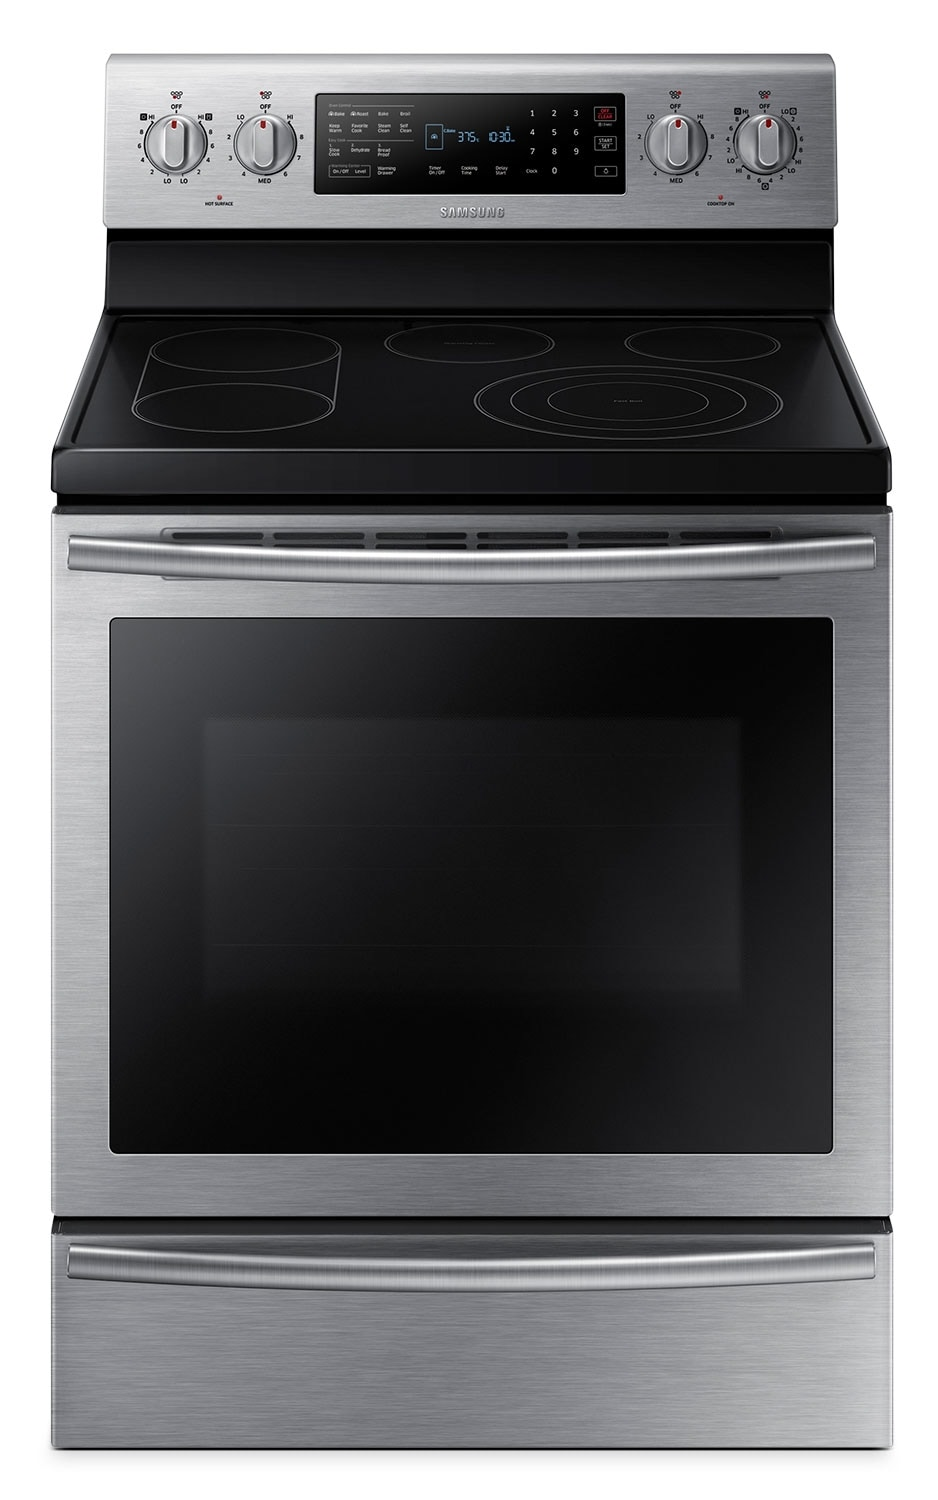 Cooking Products - Samsung 5.9 Cu. Ft. Electric Convection Range with Warming Drawer – Stainless Steel